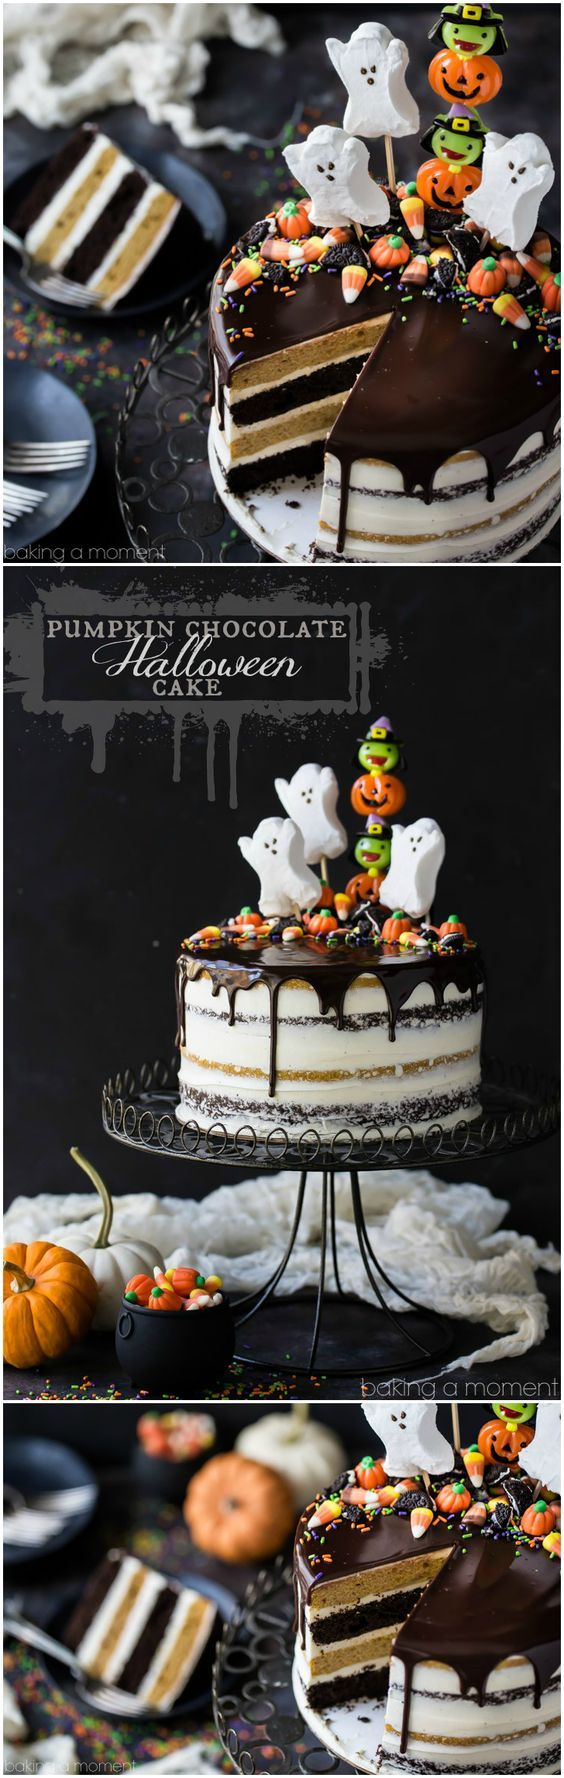 Pumpkin Chocolate Halloween Cake: the layers were moist and delicious and the frosting is like nothing else I've ever had! Really easy to decorate too, it's just candy but wow what a statement!